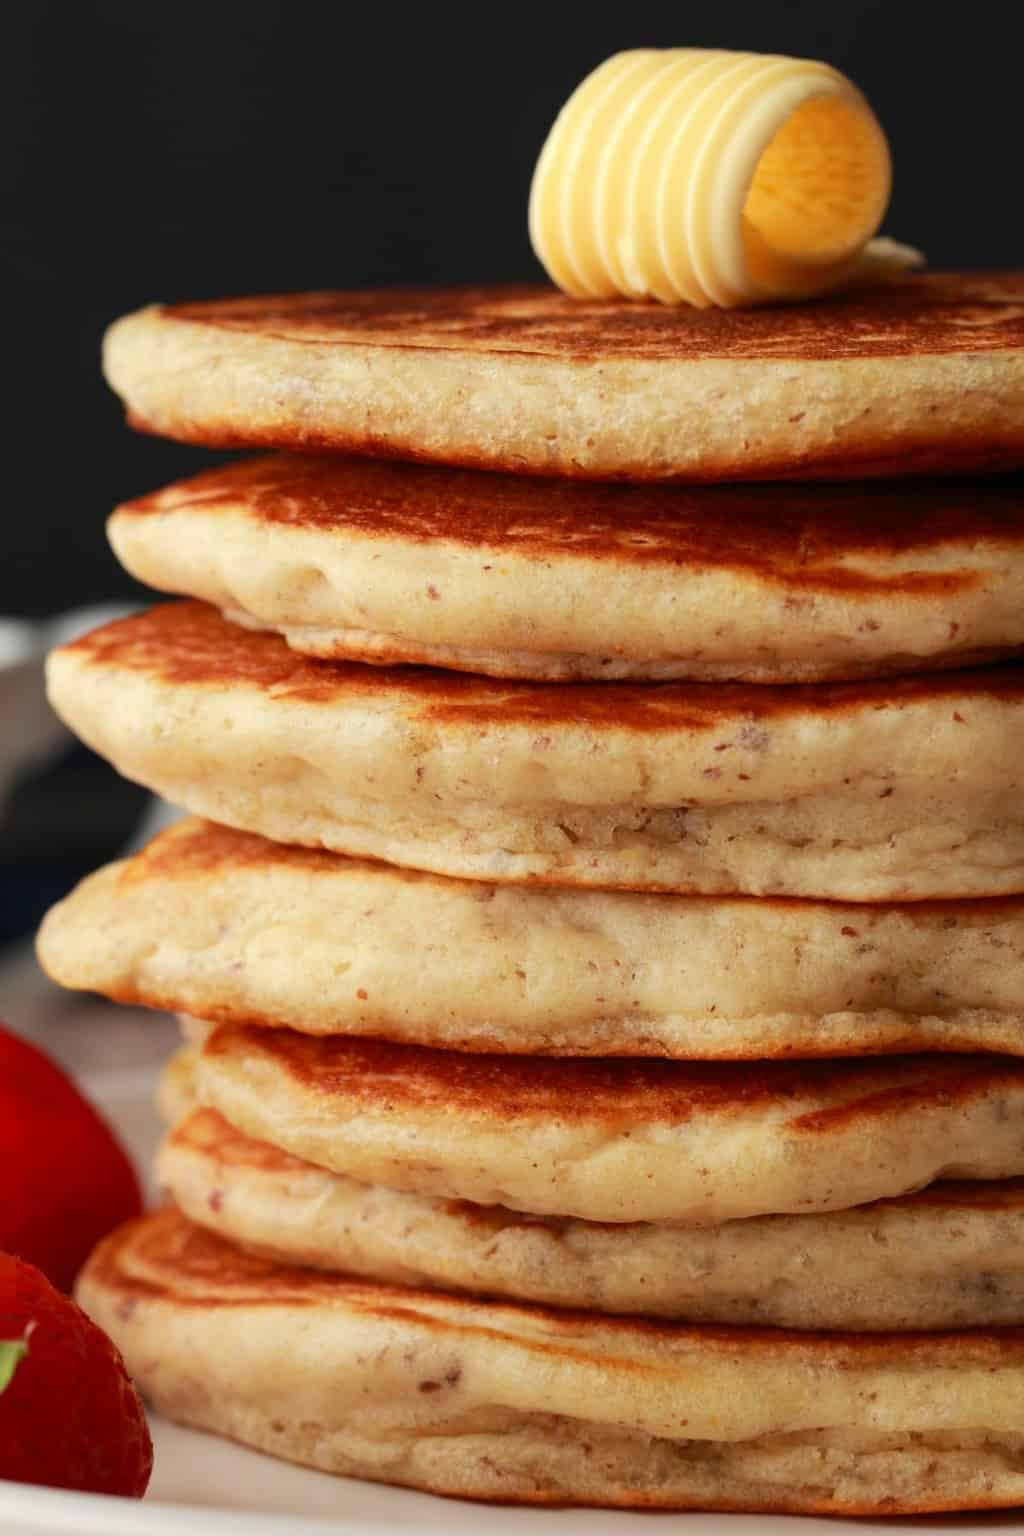 A stack of vegan pancakes with a pat of butter on top.